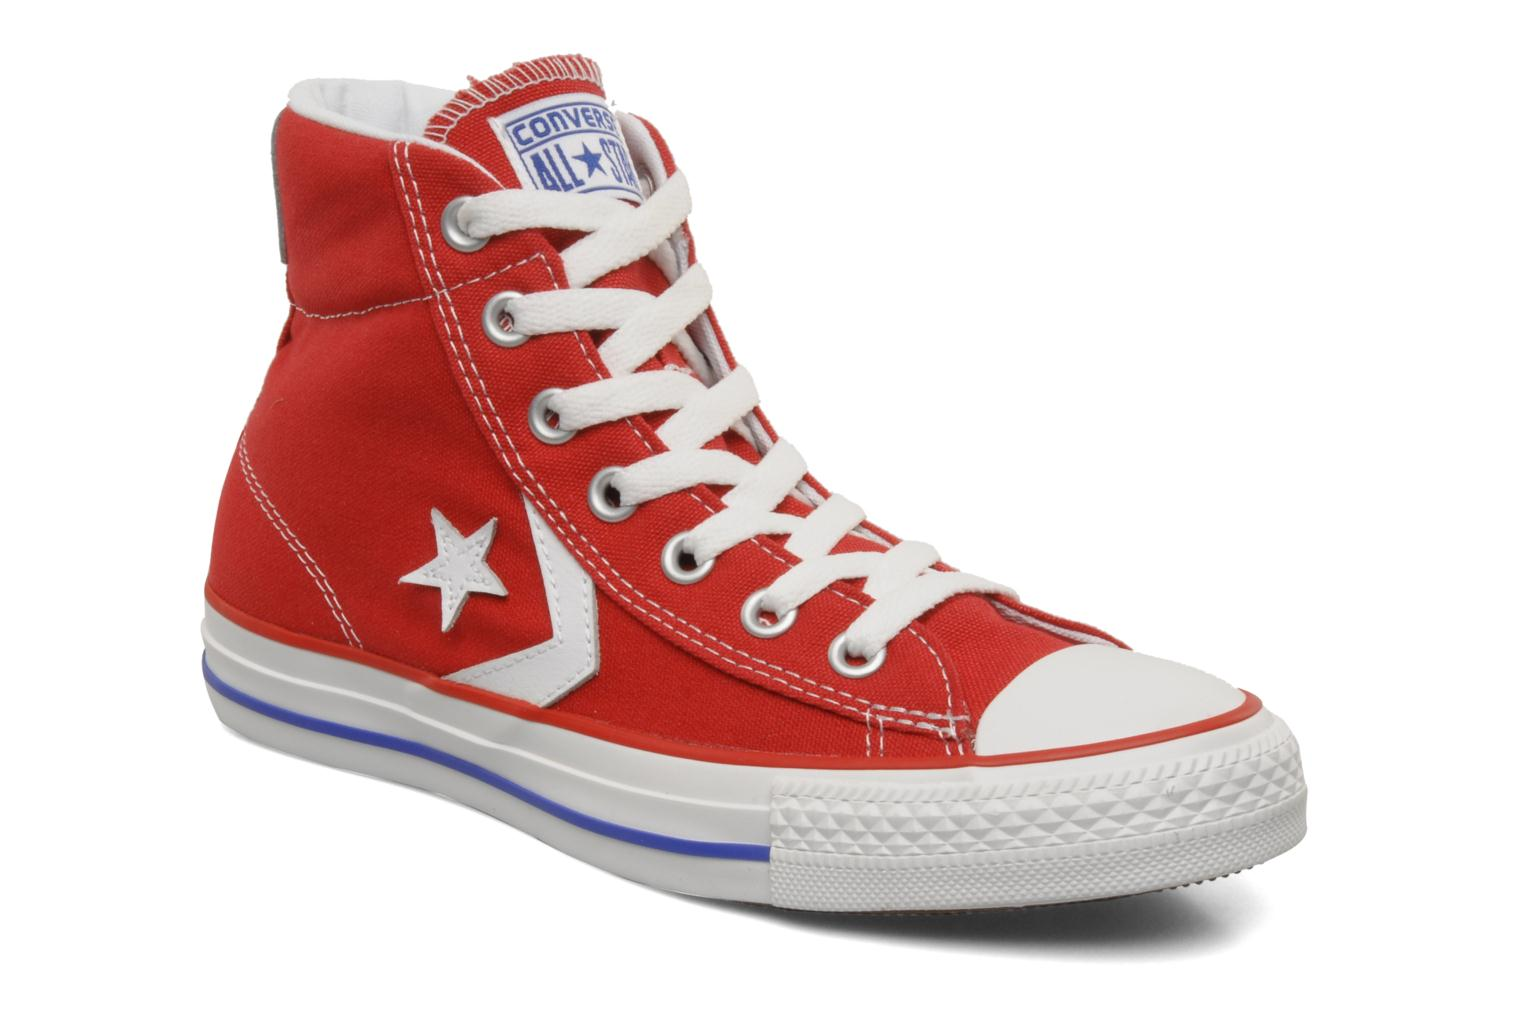 ... low cost trainers converse star player ev canvas mid w red detailed  view pair view 10438 ... b141fe3b0